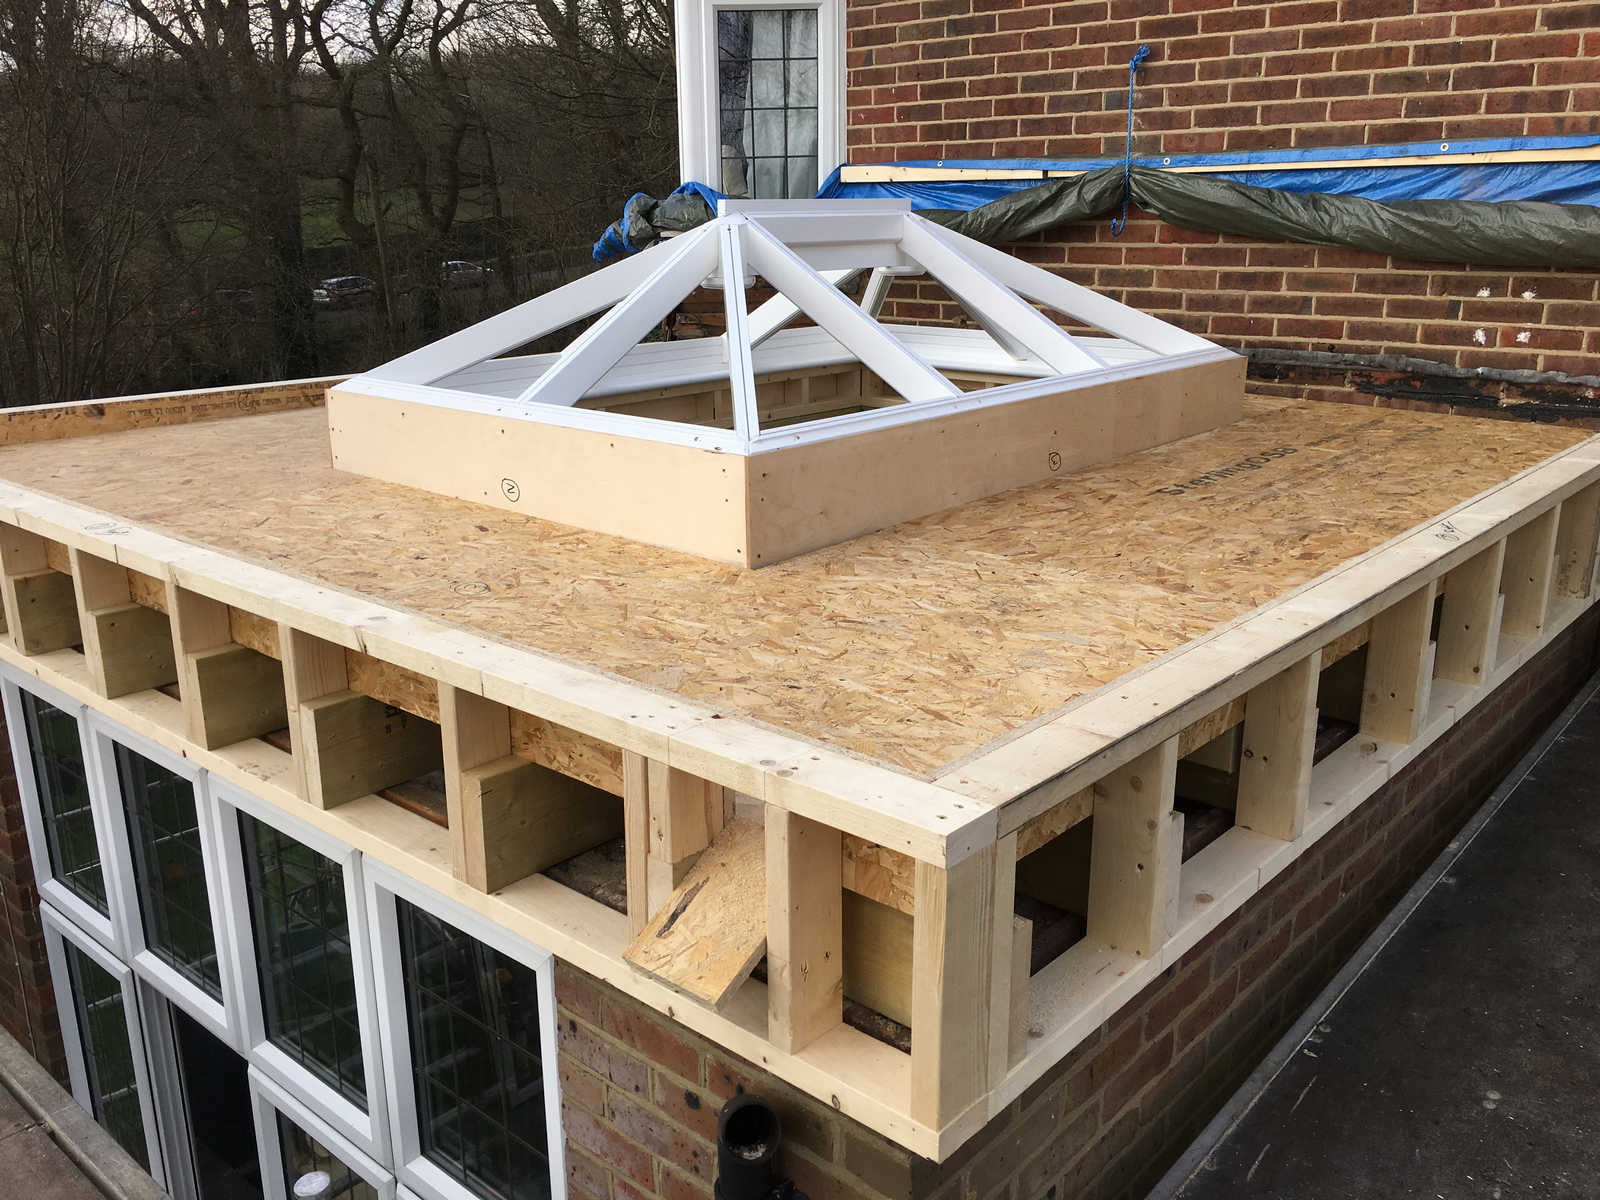 150mm Extruded Polystyrene Is Used To Insulate The Roof, Constructed  According To Building Regulations, Achieving The Best Possible U Value.